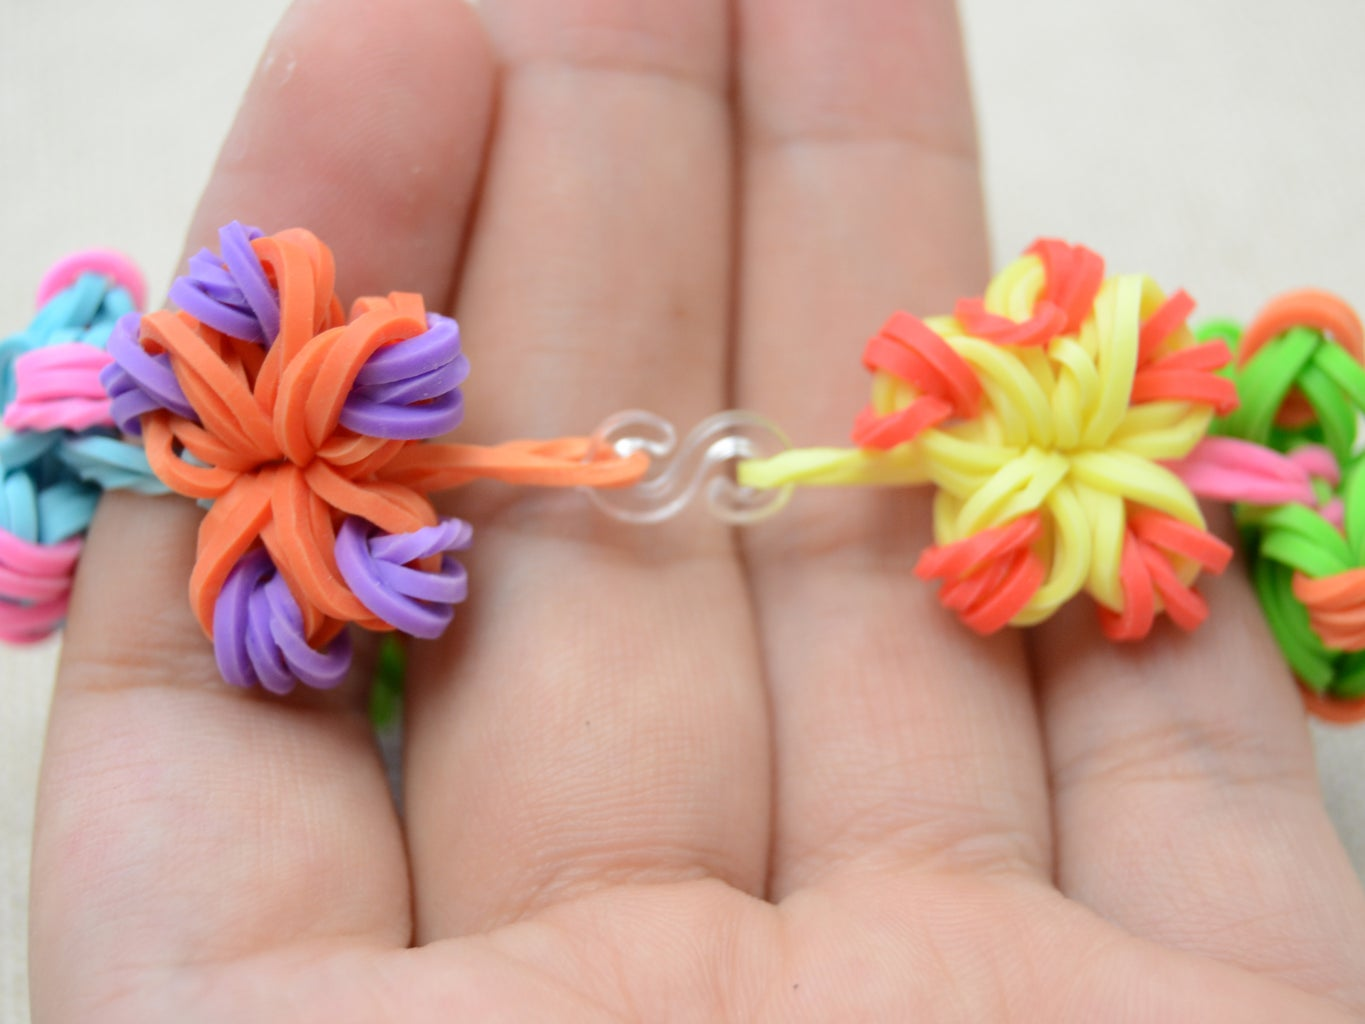 Follow to Connect All the Seven Flowers,  Then Use an S-clip to Attach Both Ends;